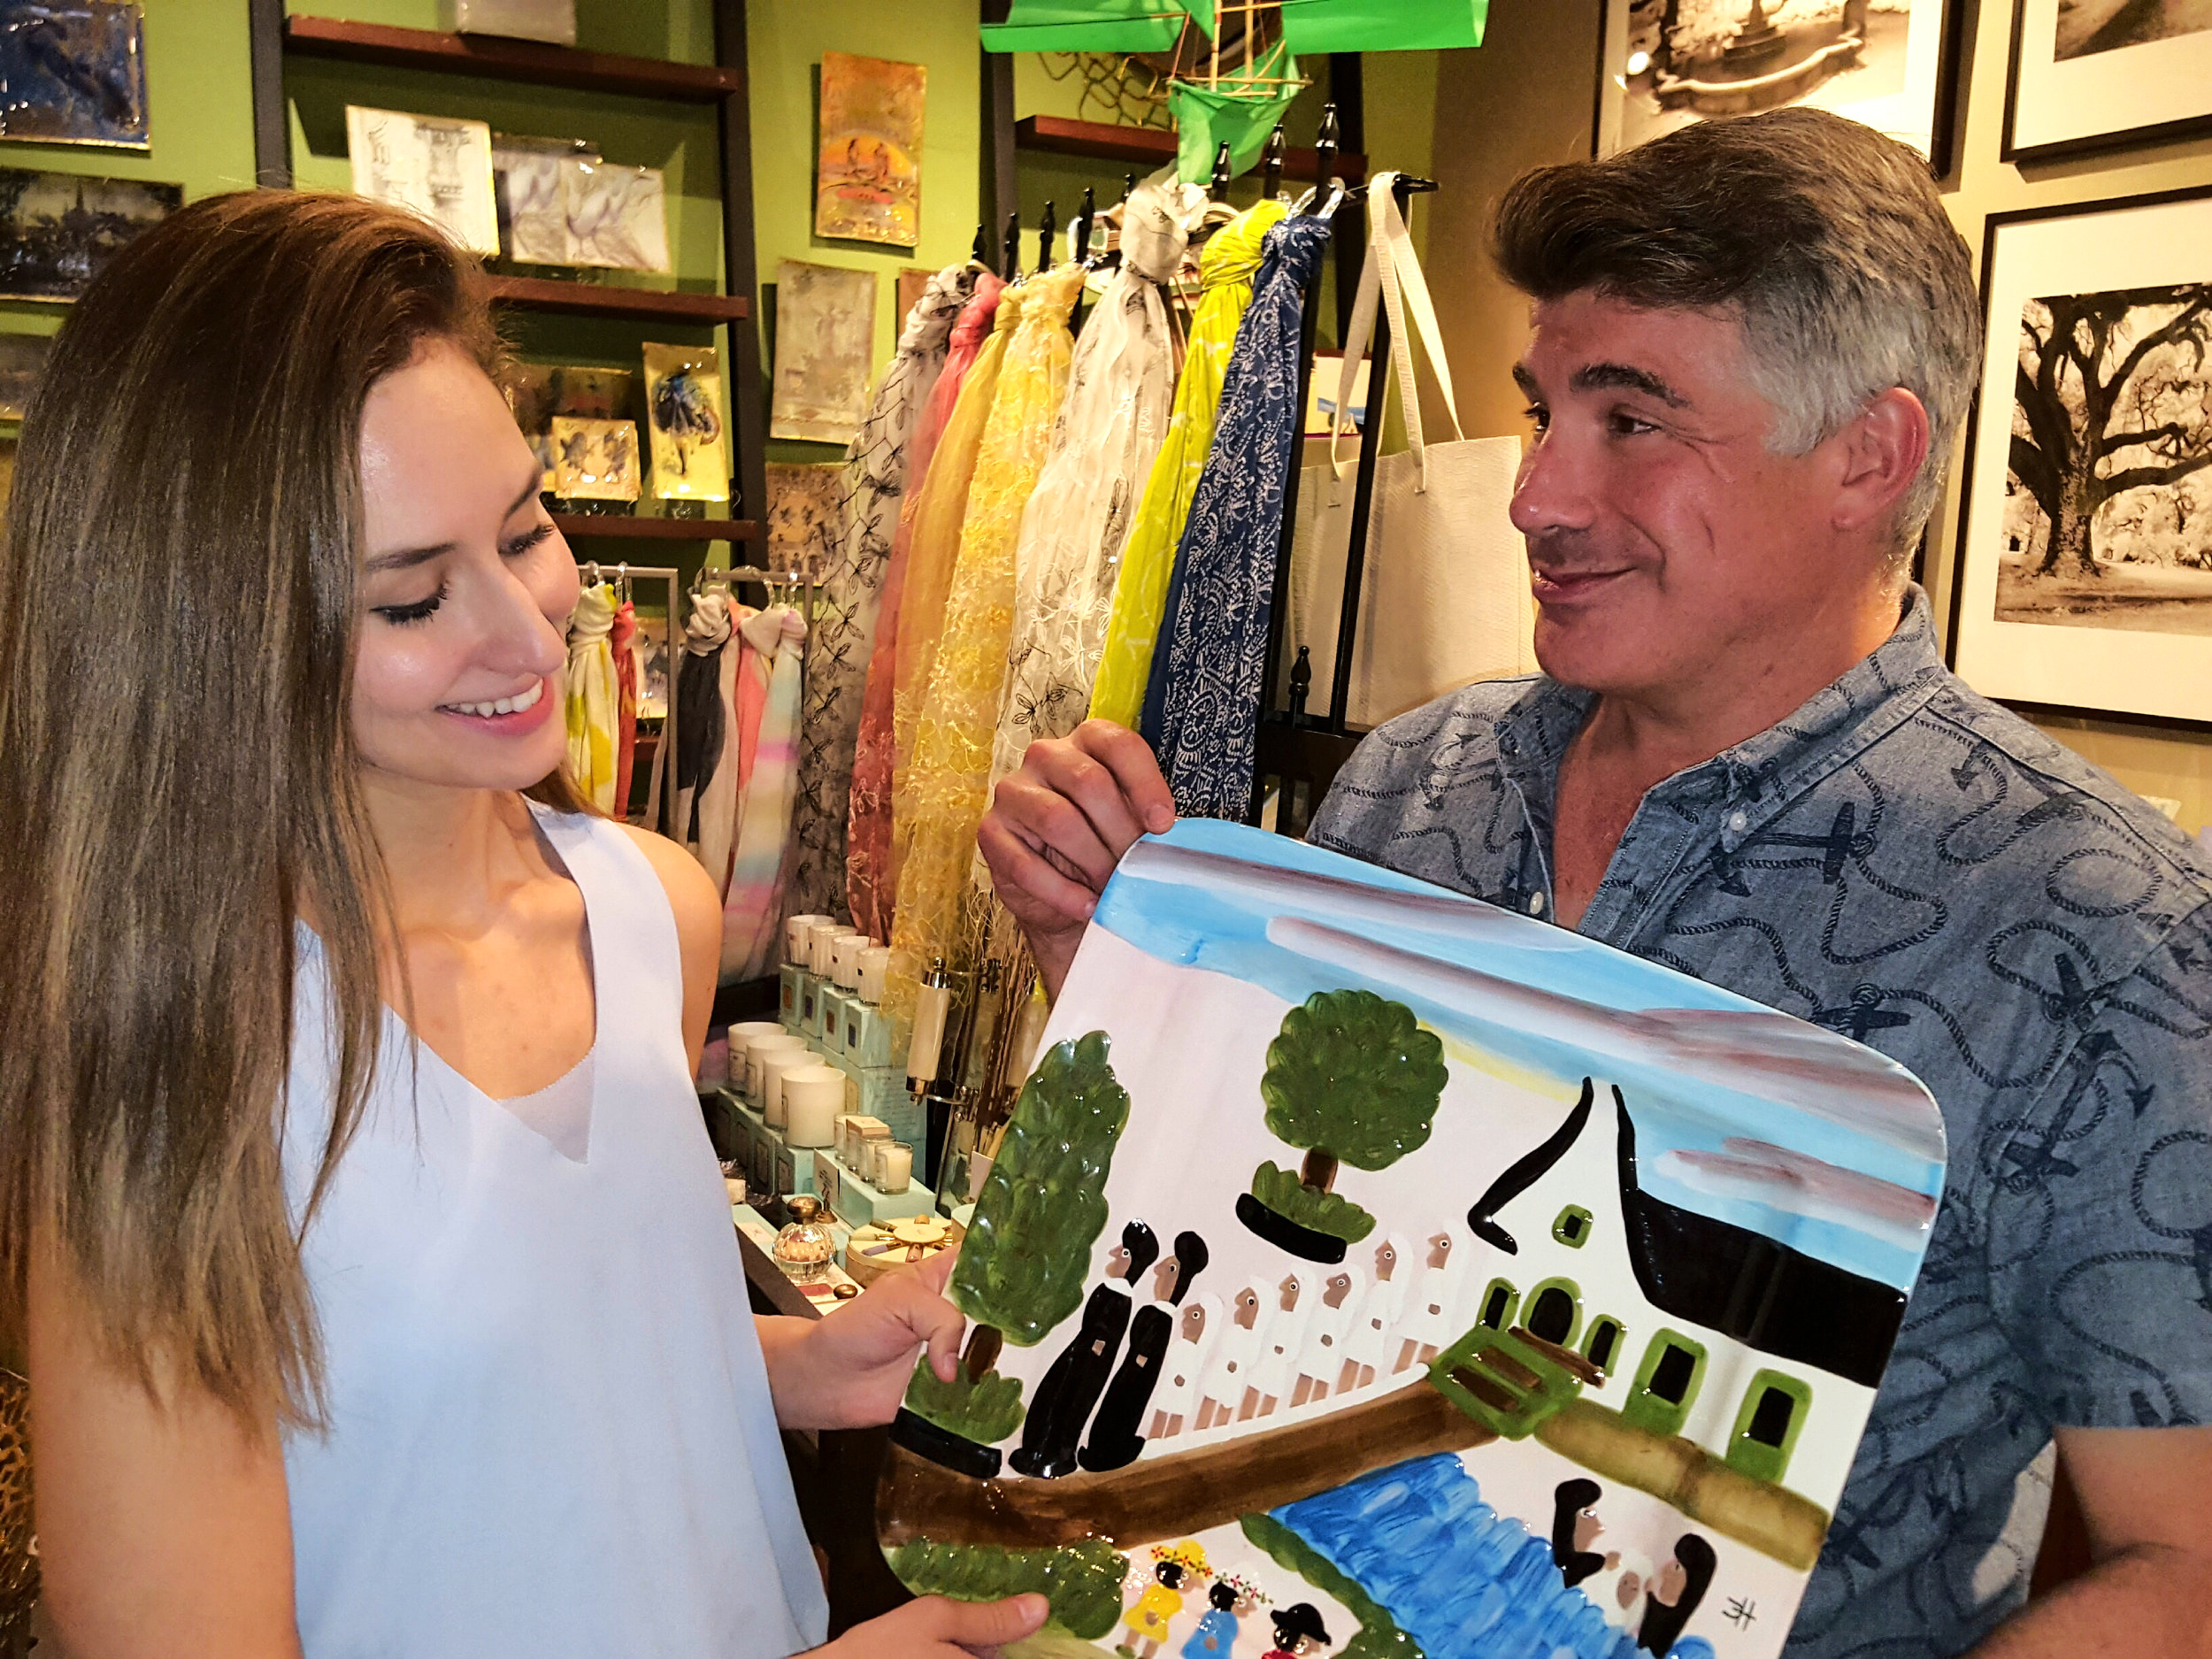 Batt shows off some new merchandise -- a majority of which is made by local New Orlean artists.